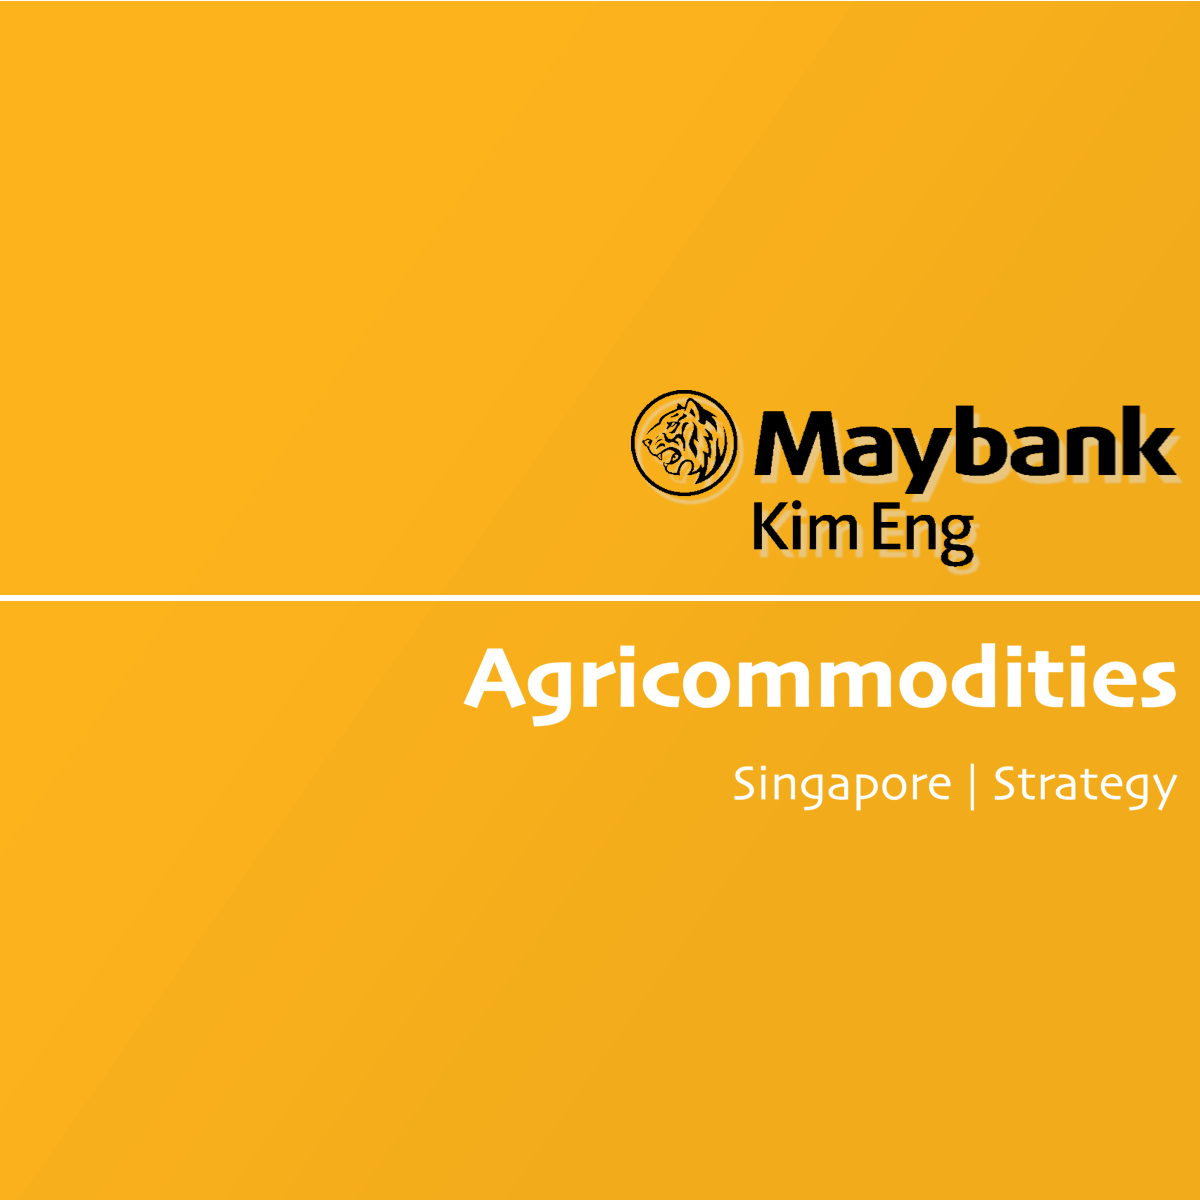 Agricommodities Sector - Maybank Kim Eng Research | SGinvestors.io